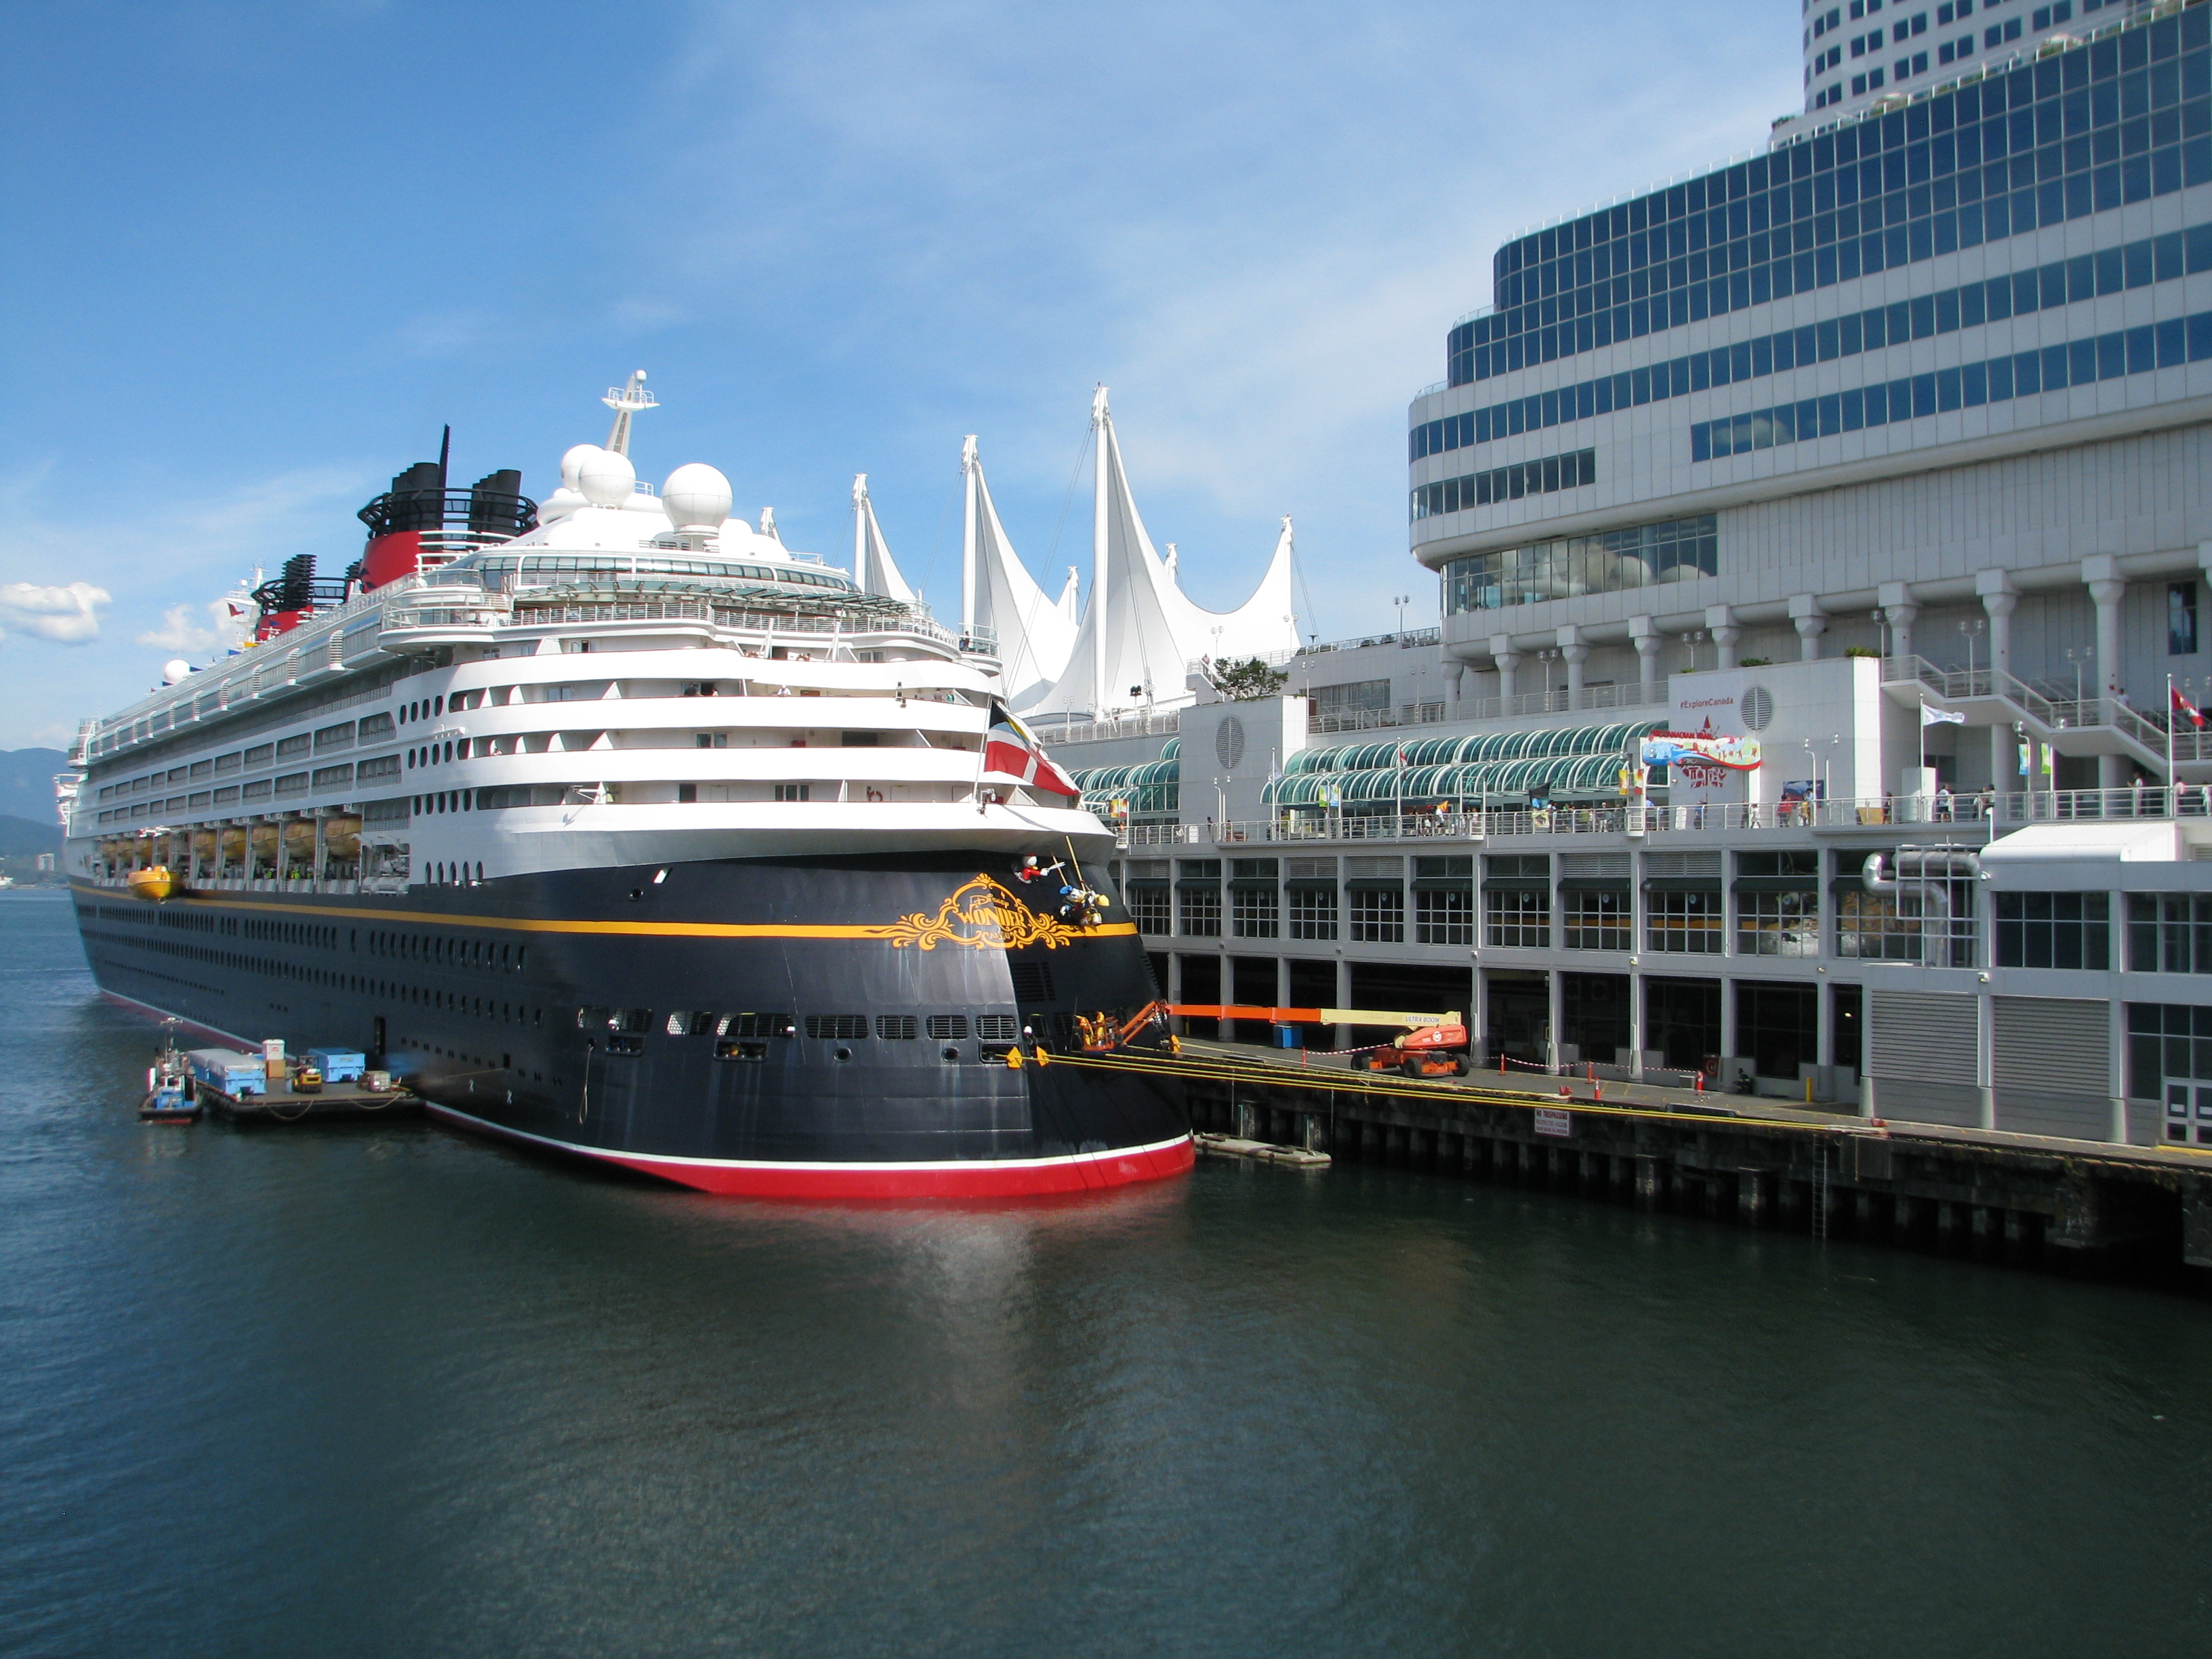 Cruise Ship Limousine Service Vancouver Cruise Ship Terminal - Can you text from a cruise ship